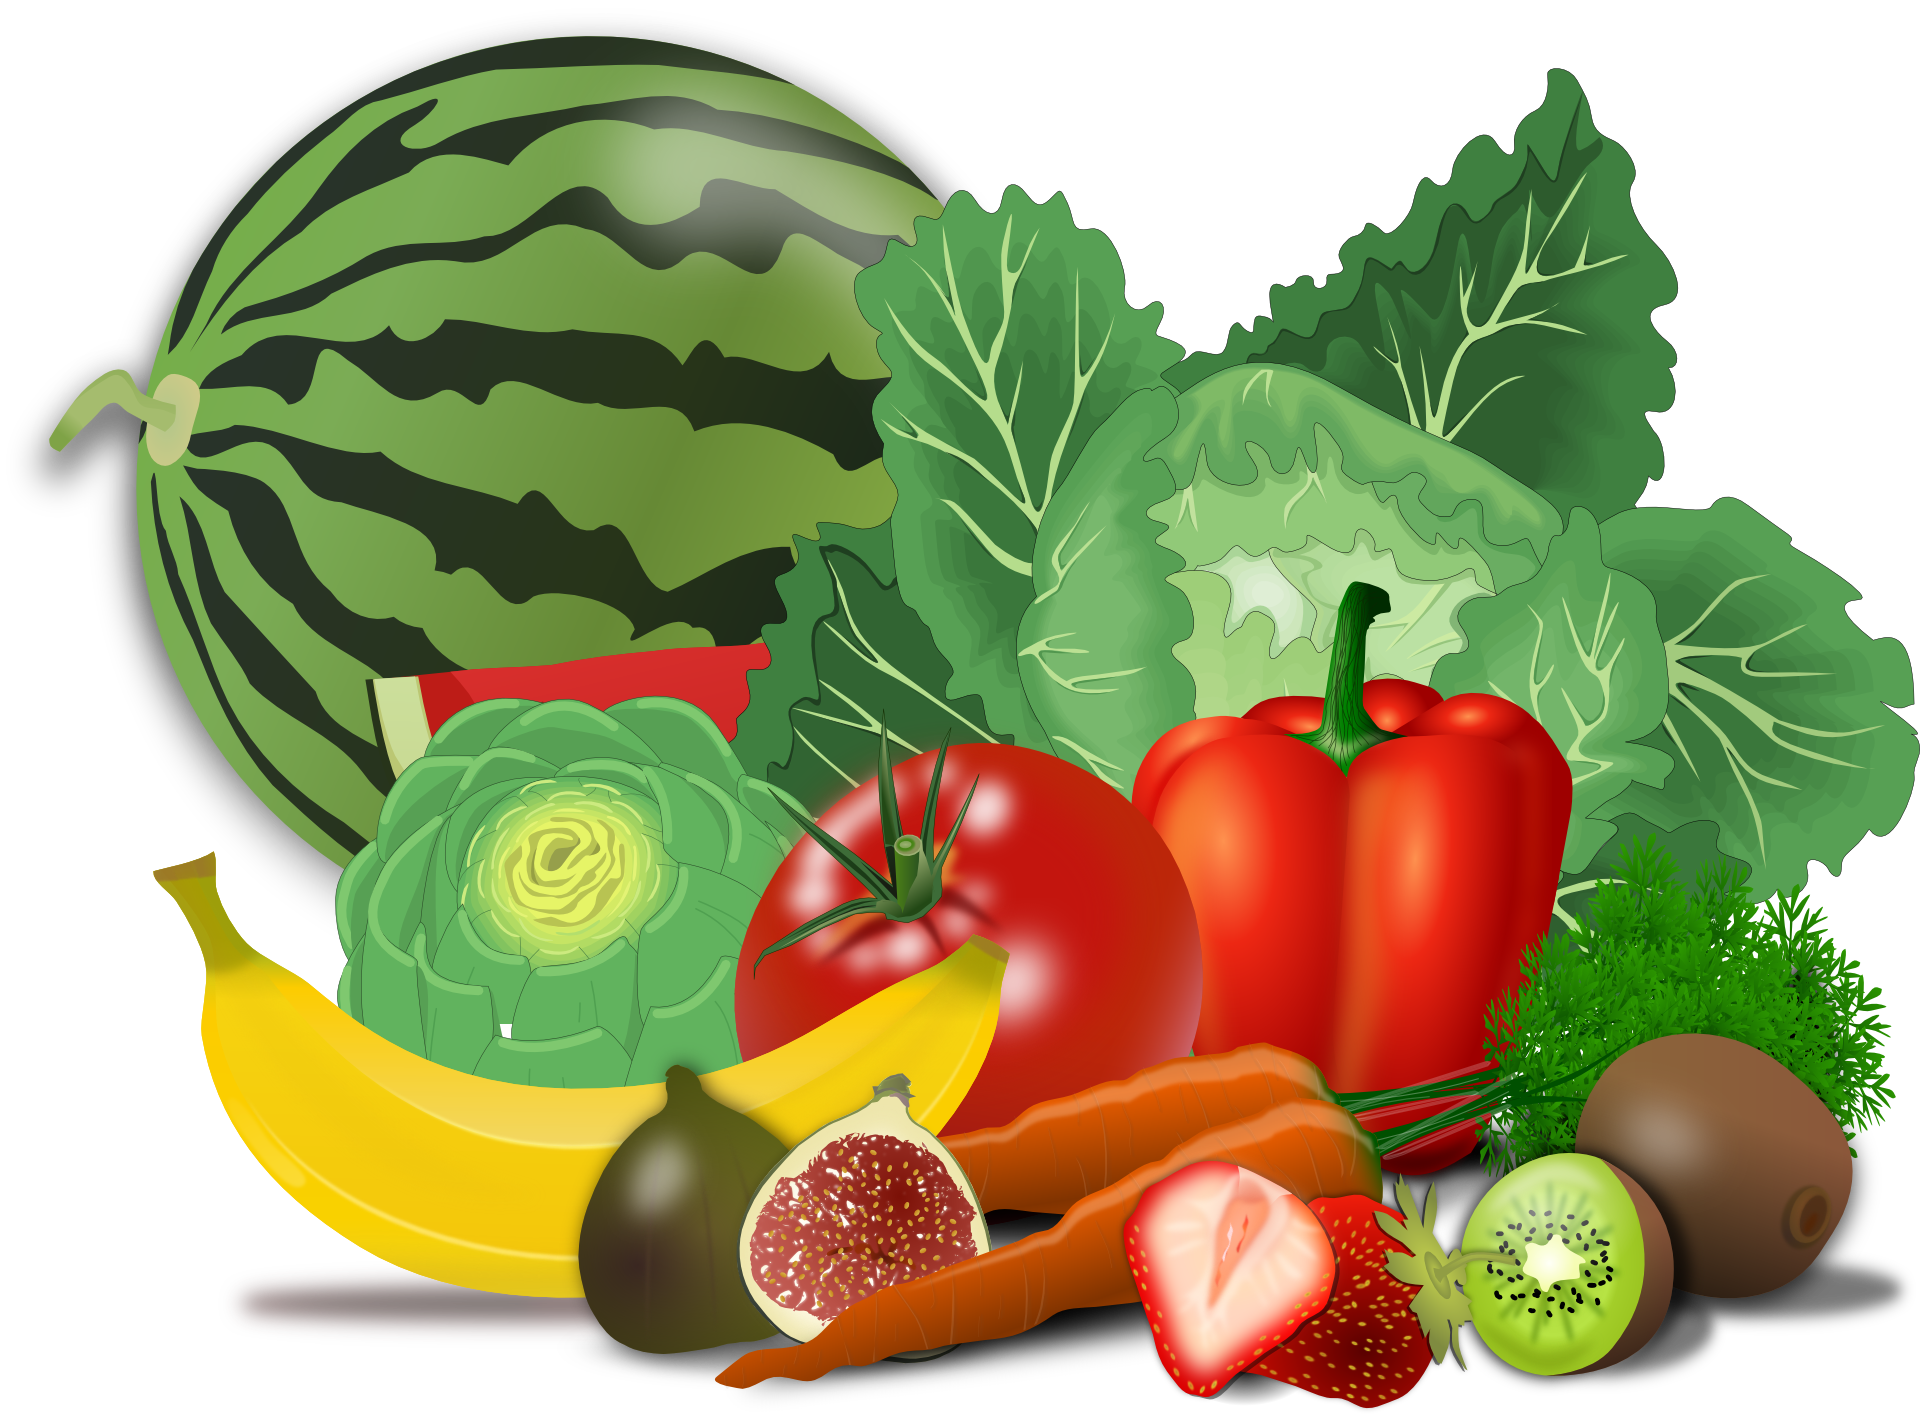 Foods drawing at getdrawings. Health clipart healthy diet